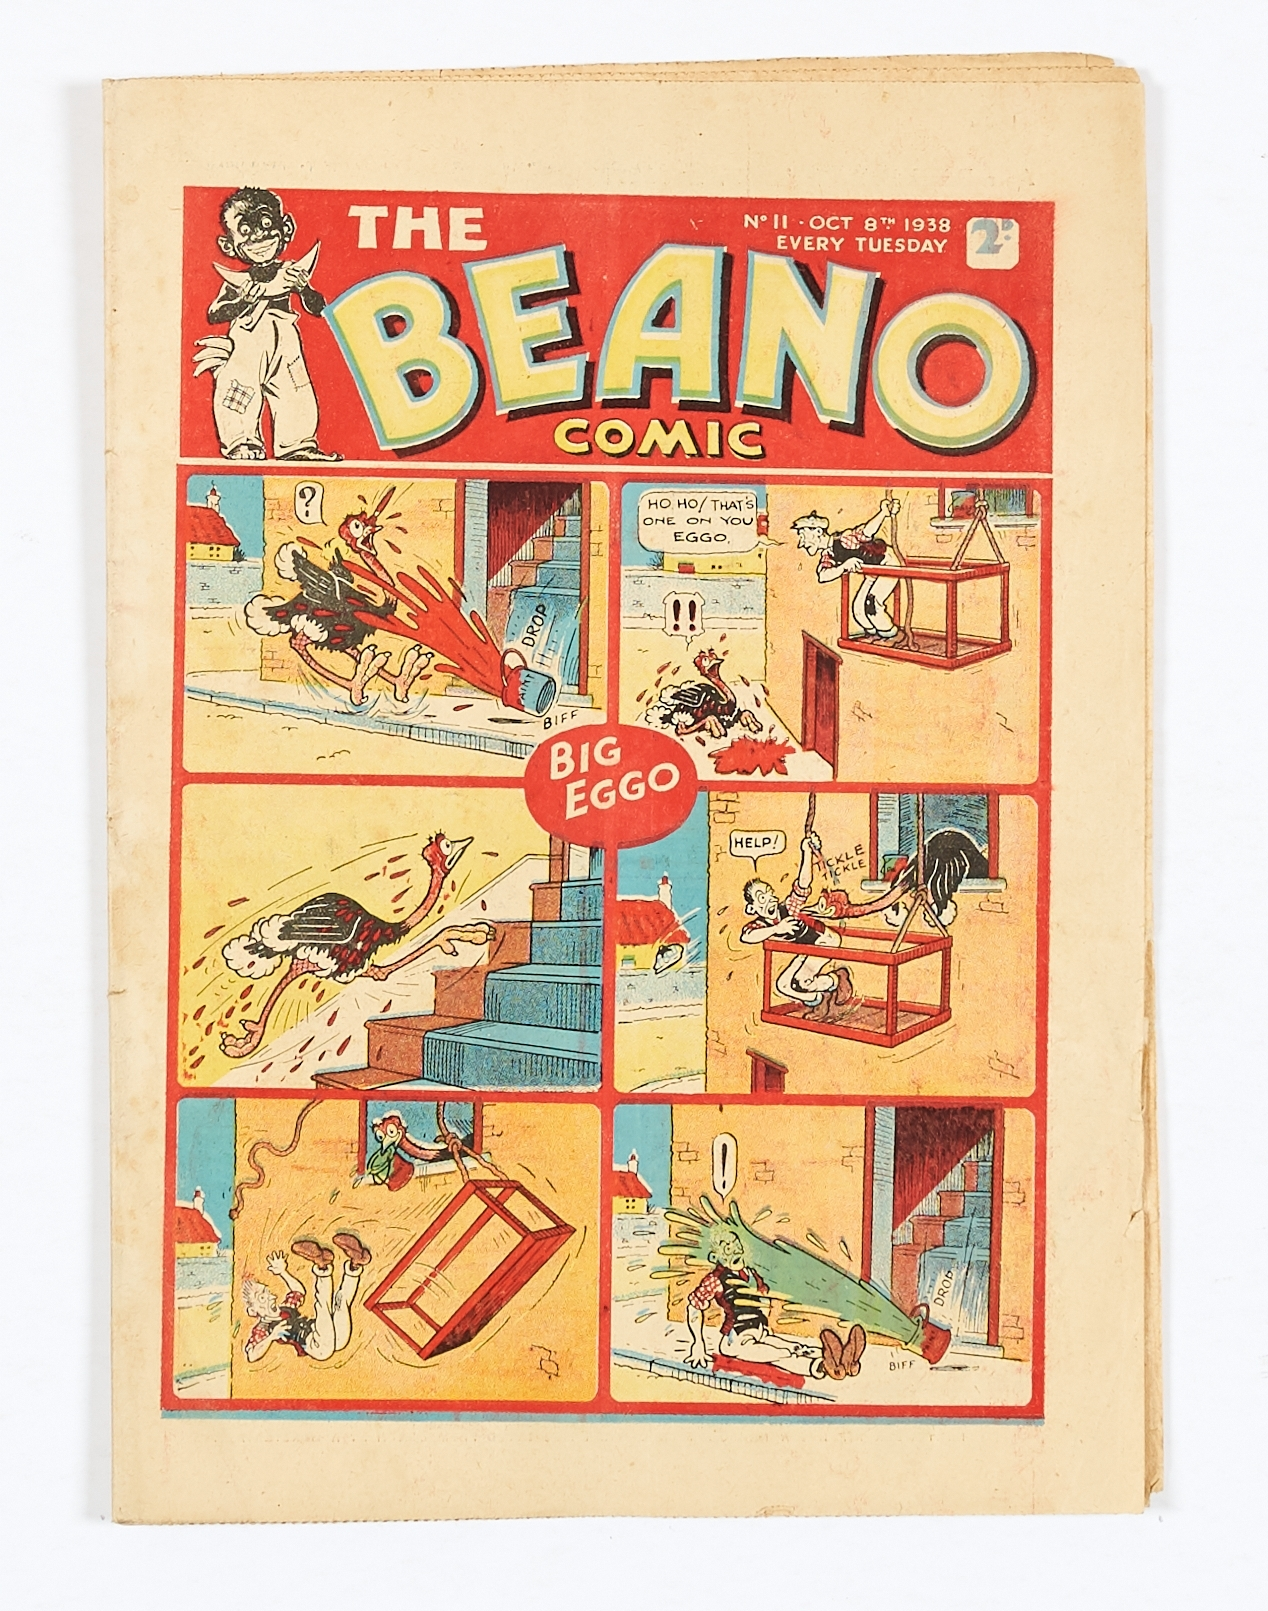 Lot 14 - Beano No 11 (1938). Only a few copies known to exist. Bright cover, cream/light tan pages, page